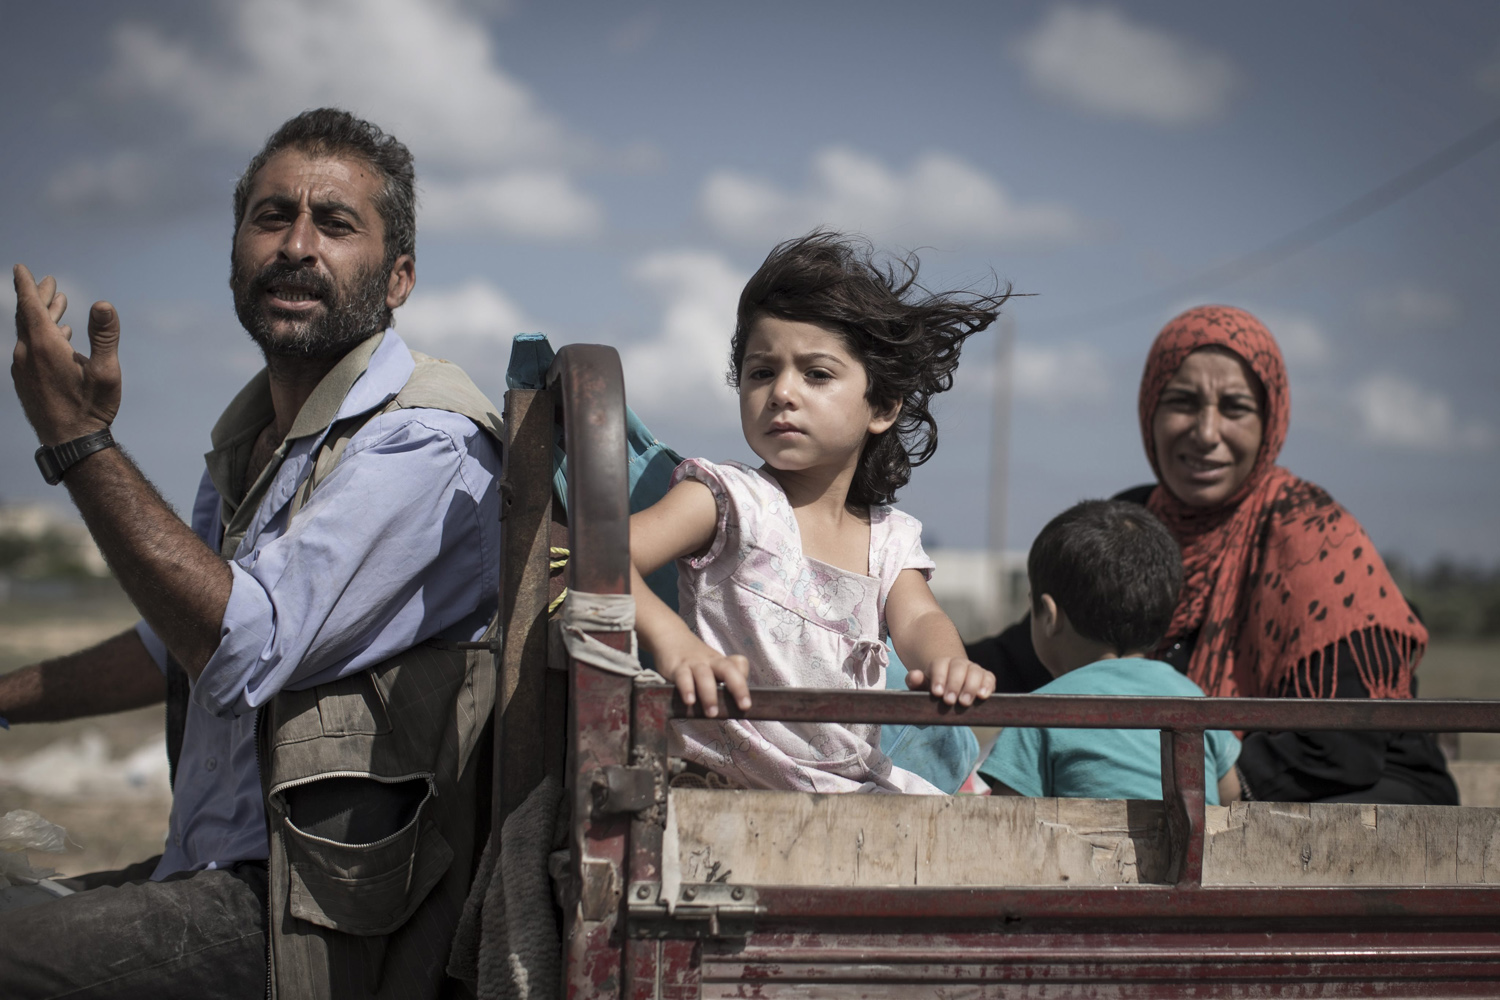 Jul. 18, 2014. A Palestinian family who fled their homes is en route to seek shelter in a UN school in Khan Younis, central Gaza Strip.